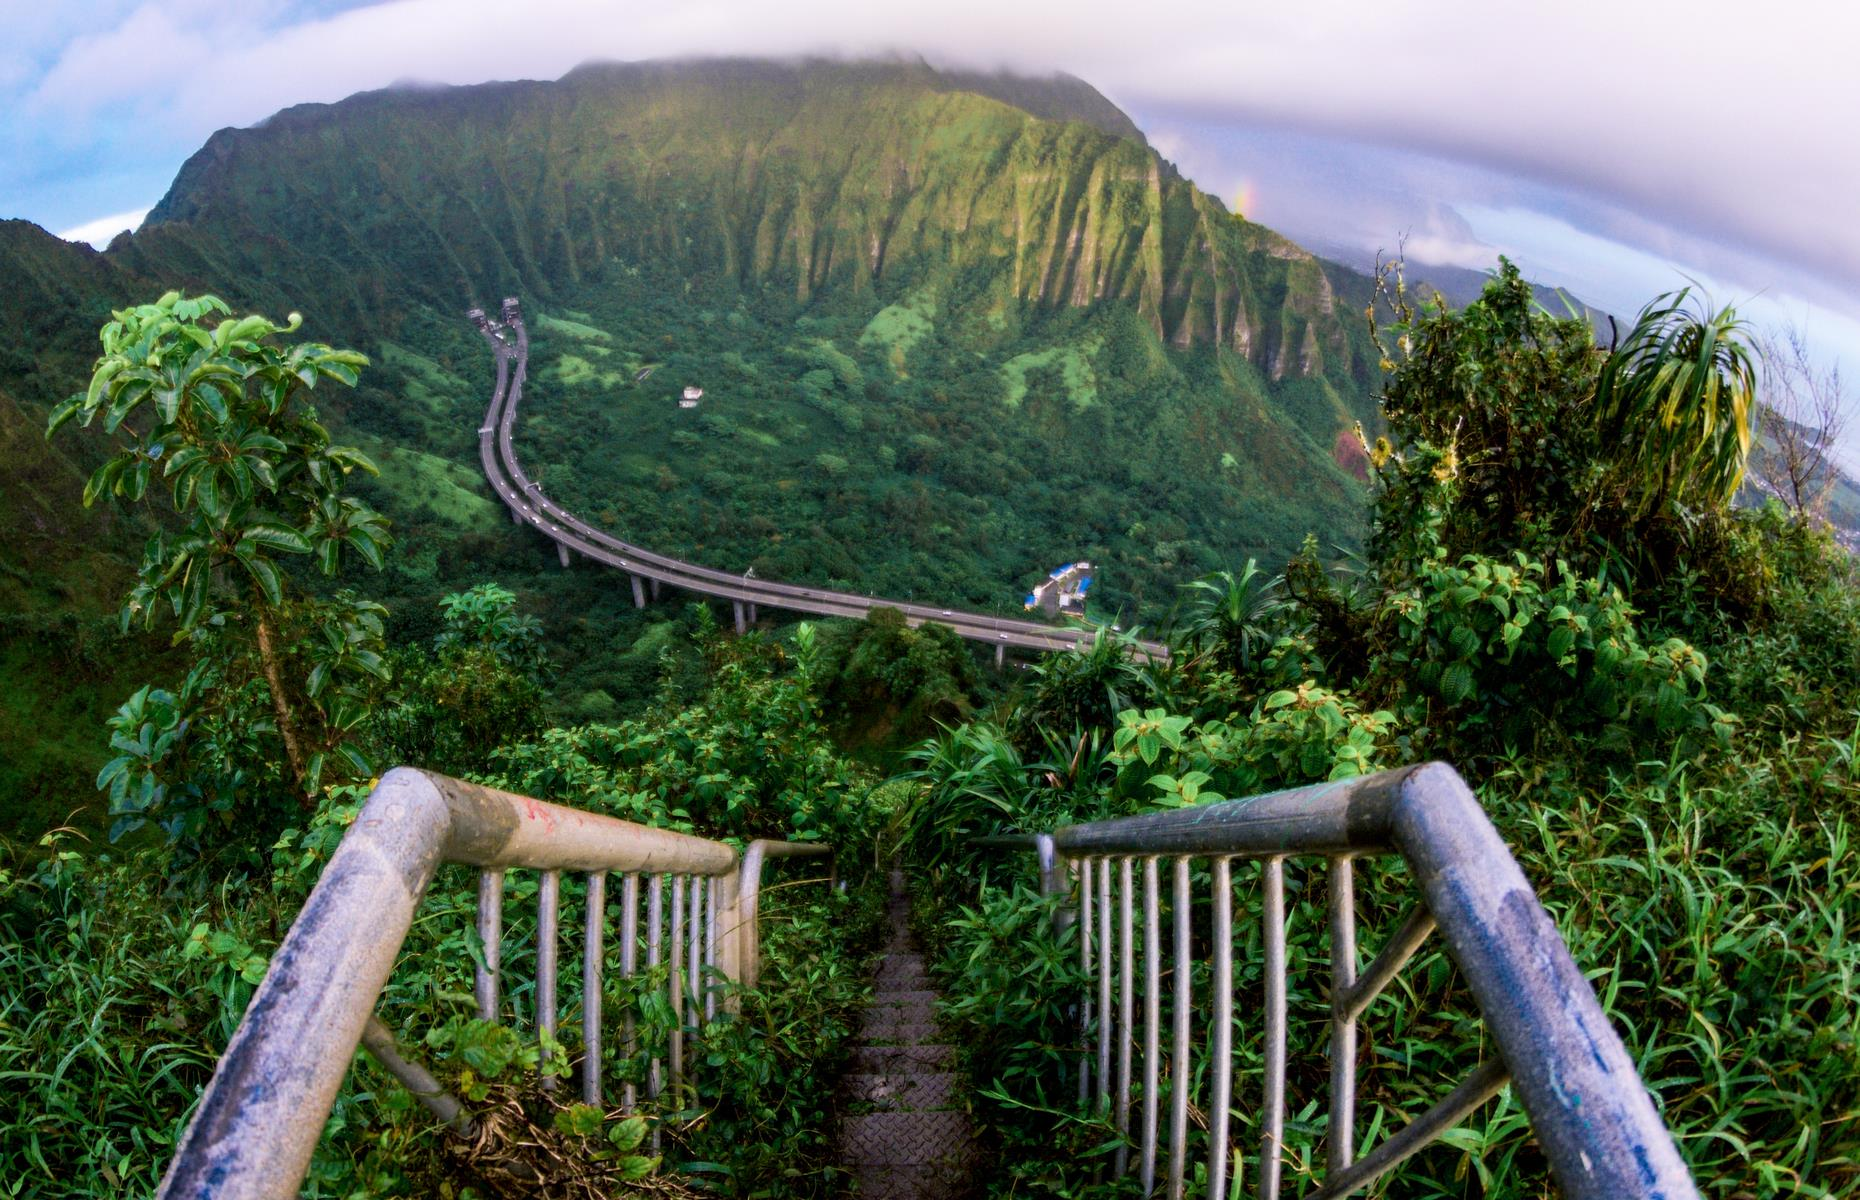 Slide 28 of 61: Nicknamed the Stairway to Heaven for good reason, this dizzying staircase lines Oahu's green Ko'olau mountains, and was built back in 1942 by the US Navy. Sadly, due to safety concerns, there are calls for the stairs to be demolished. The stairs, almost 4,000 of them,have been closed to the public for several years nowand you'll face a hefty fine if you attempt to trespass on them. However, the (legal) Kulana'ahane trail, a challenging forested hike, offers decent views of the stairway while it remains.